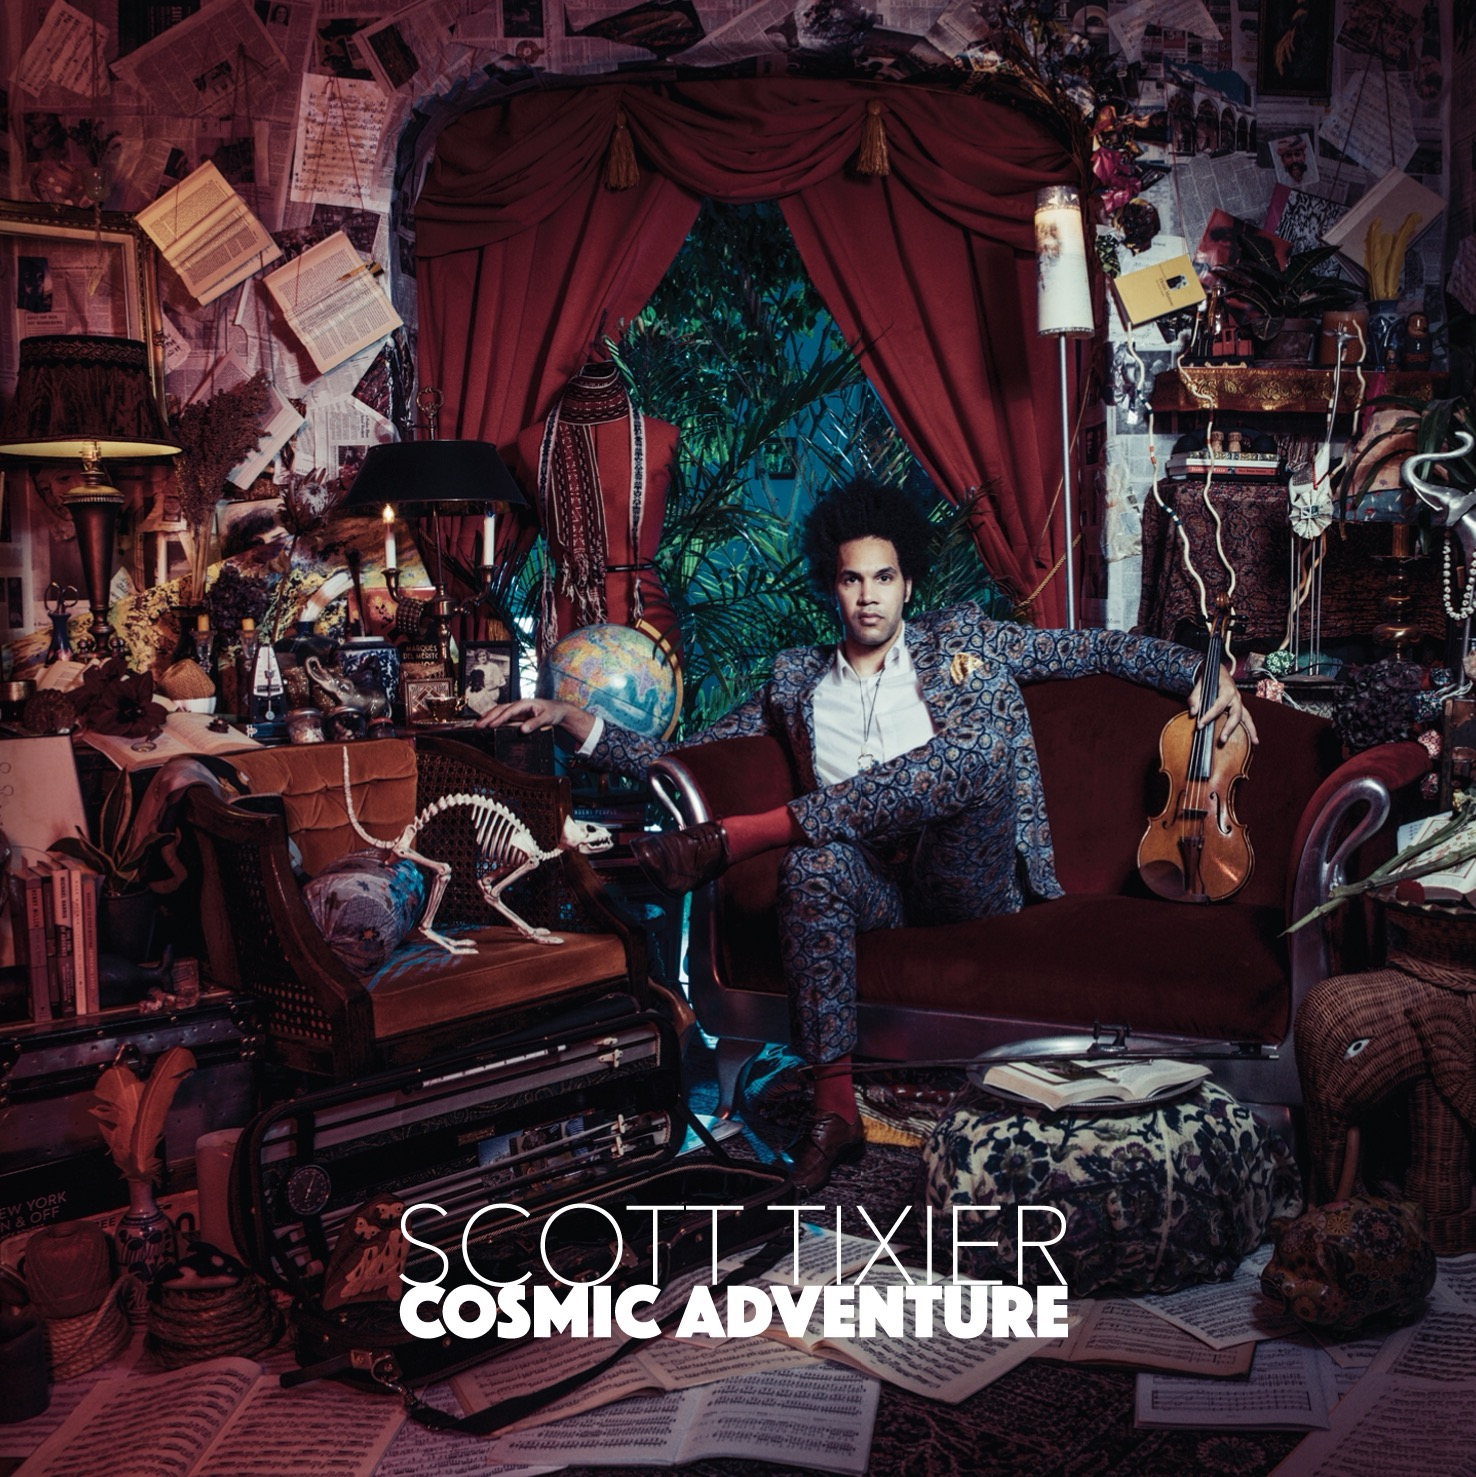 Scott Tixier's 'Cosmic Adventure' included in two 'Best Of' roundups (Bandcamp Daily & Archaic Pop)